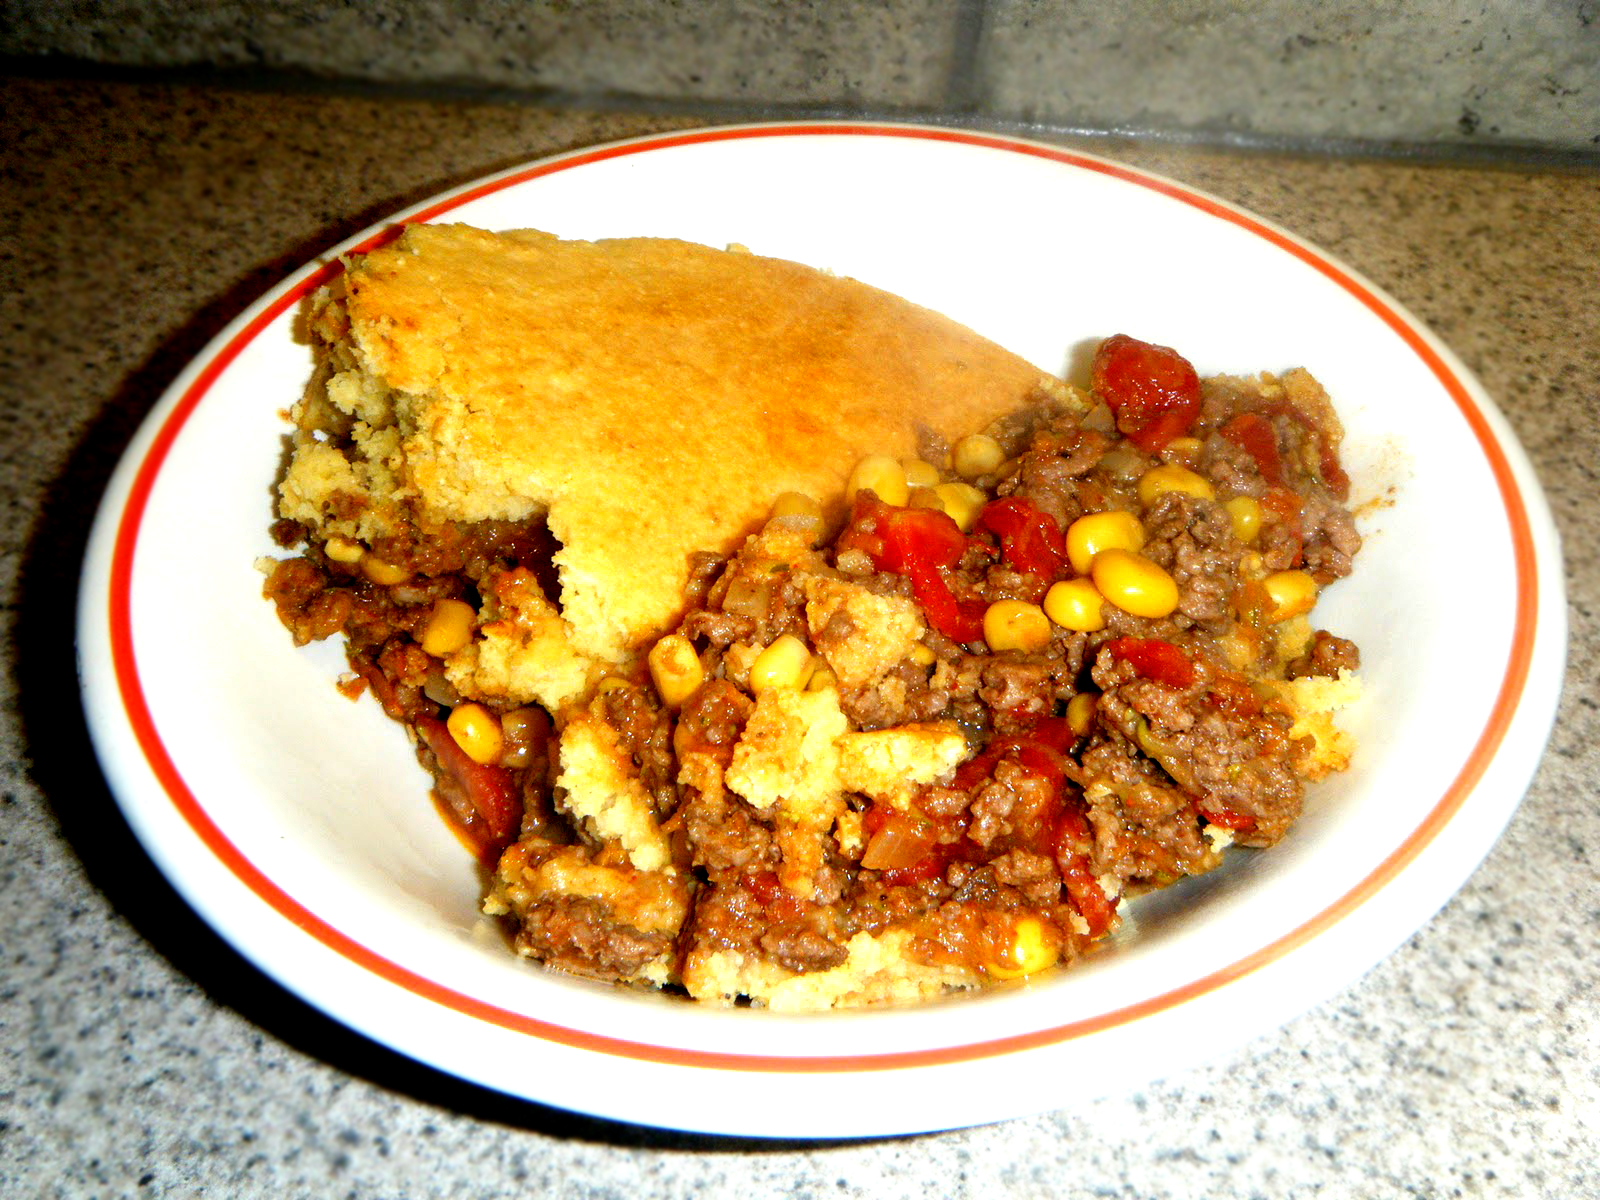 Baked Chili with Cornmeal Crust picture